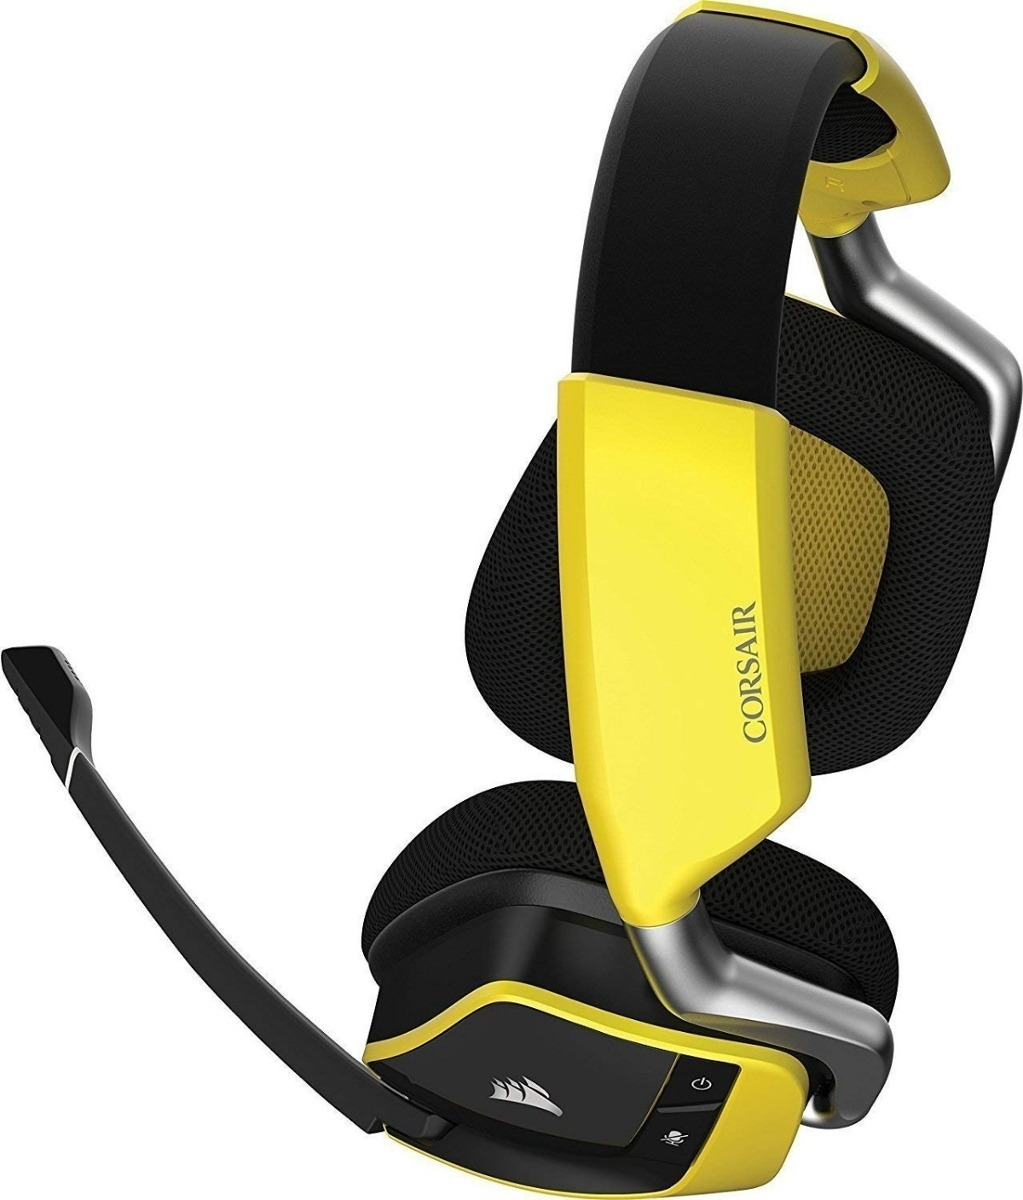 Corsair VOID Pro RGB Wireless Gaming Headset Review!